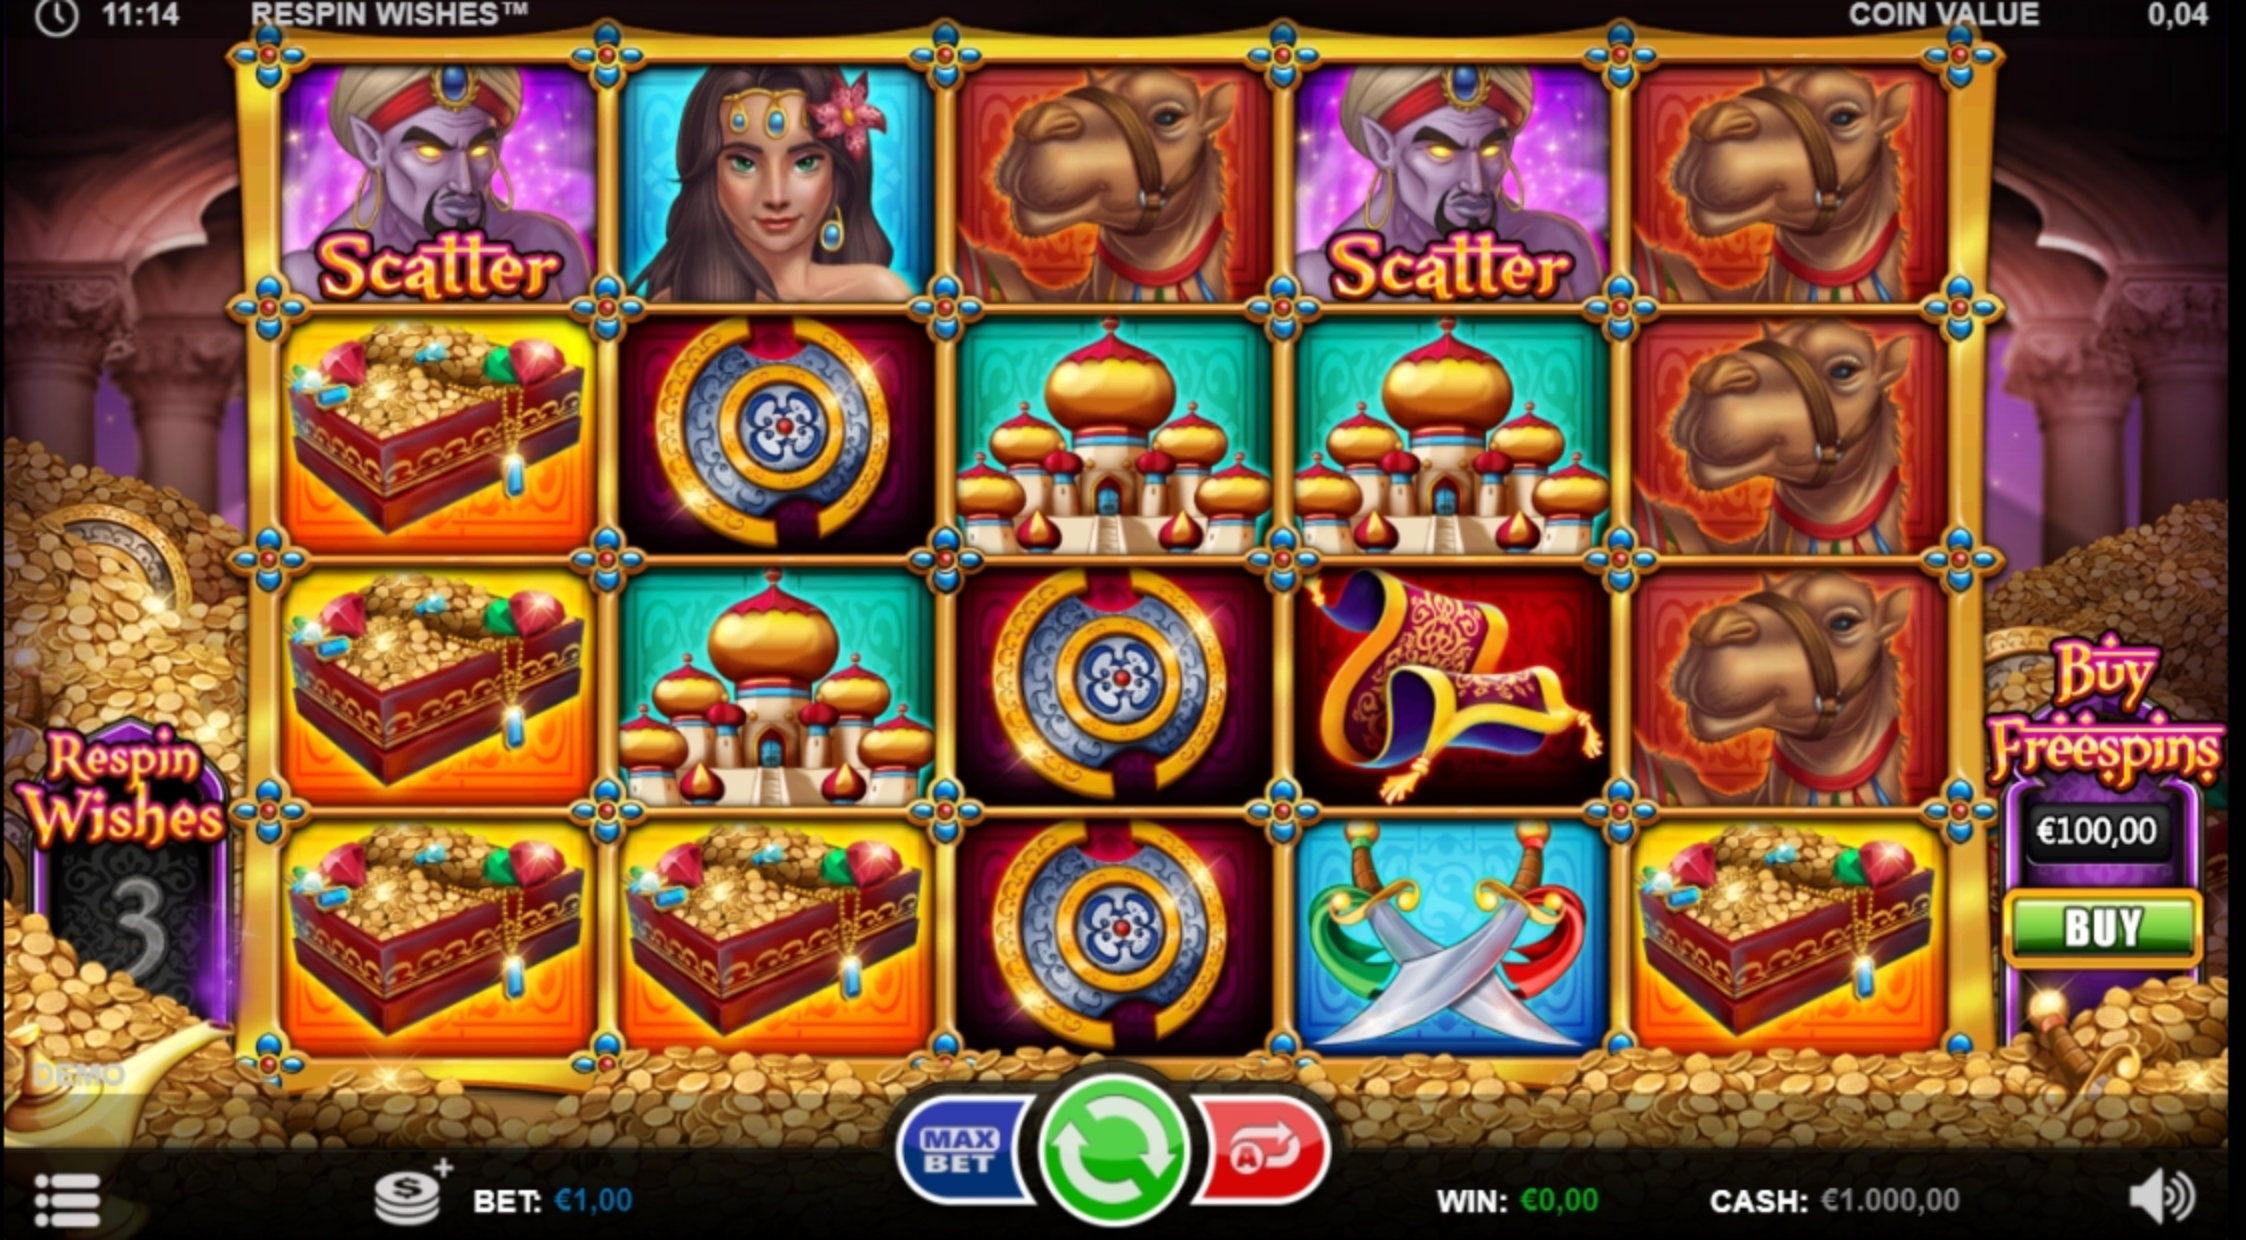 Reels in Respin Wishes Slot Game by Games Inc